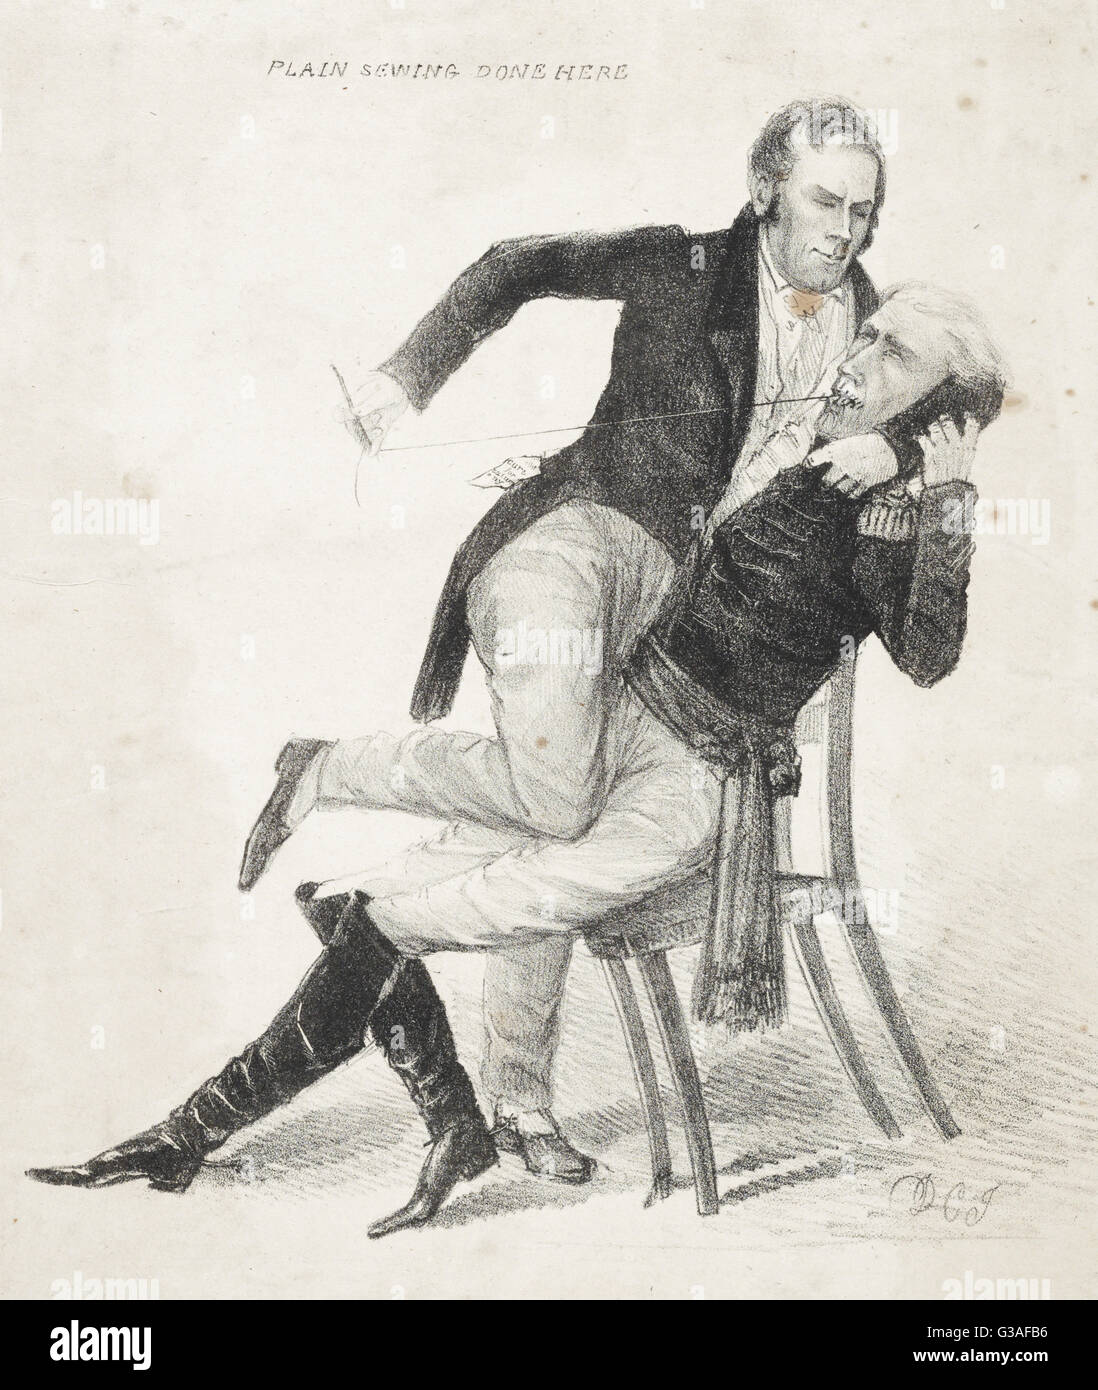 Symptoms of a locked jaw. Plain sewing done here. The caricature reflects the bitter antagonism between Kentucky - Stock Image